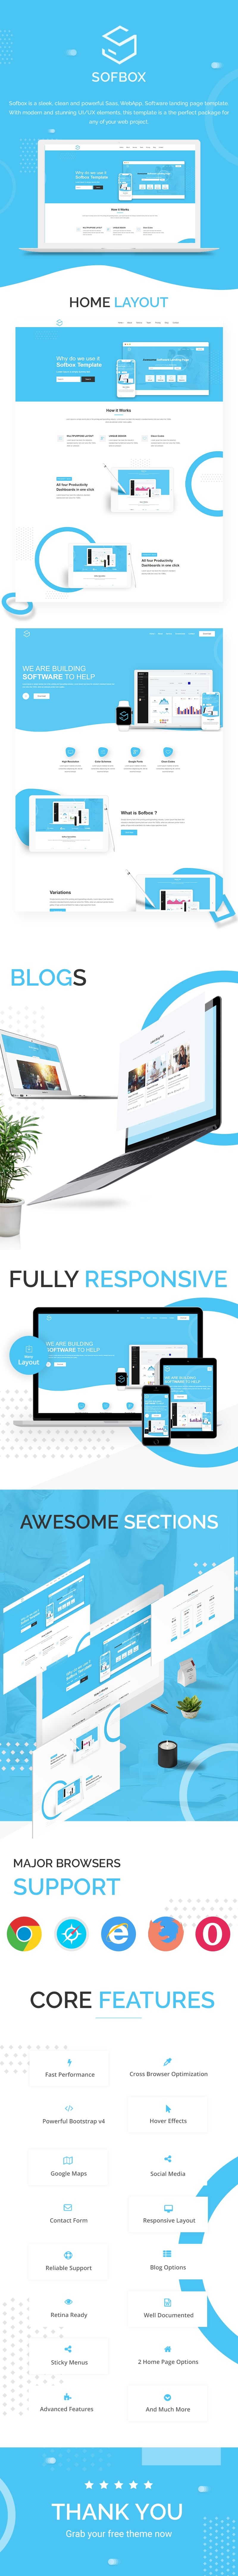 free software landing page html5 template Sofbox Classic SofboxPreview min